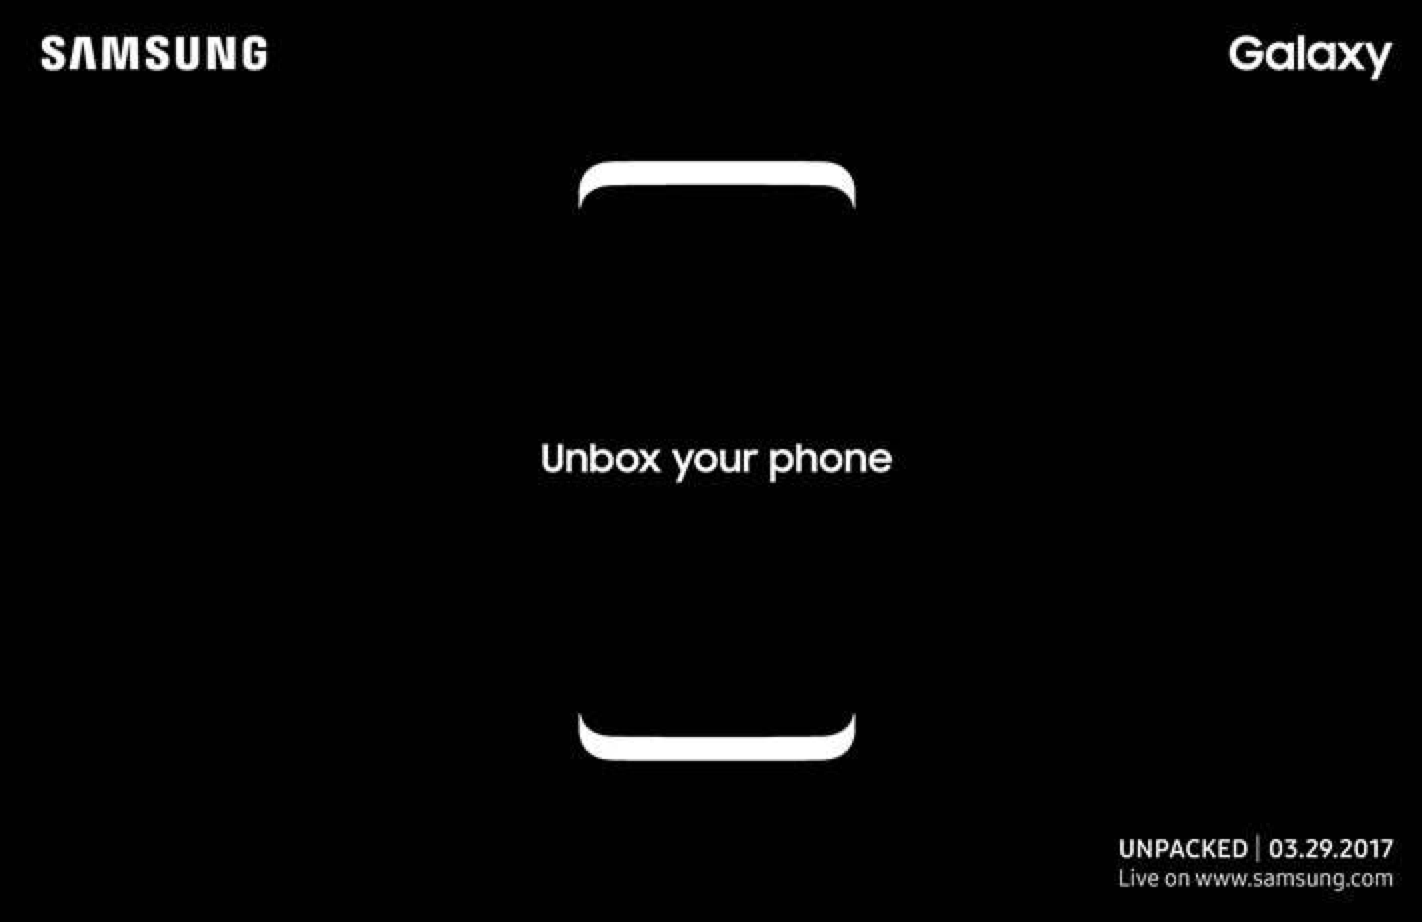 Samsung Galaxy A7, A5 and A3 may debut in India this week